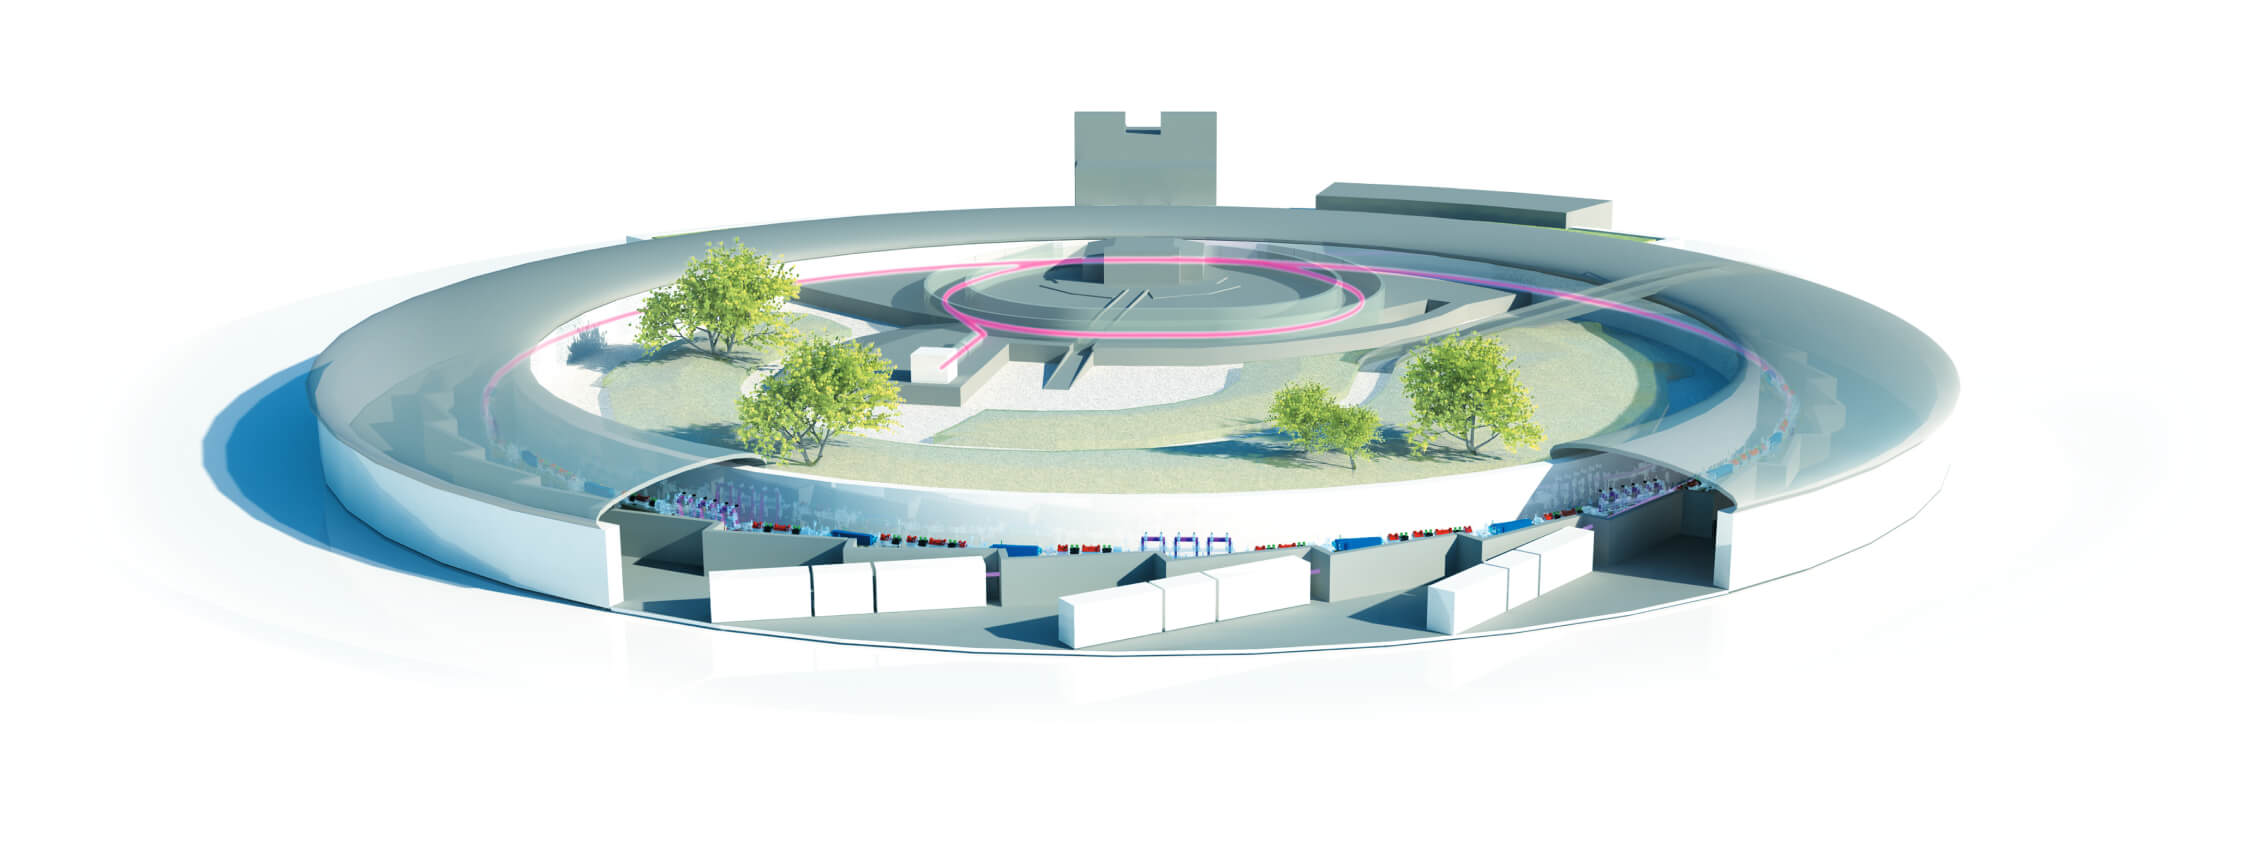 schema of the european synchrotron